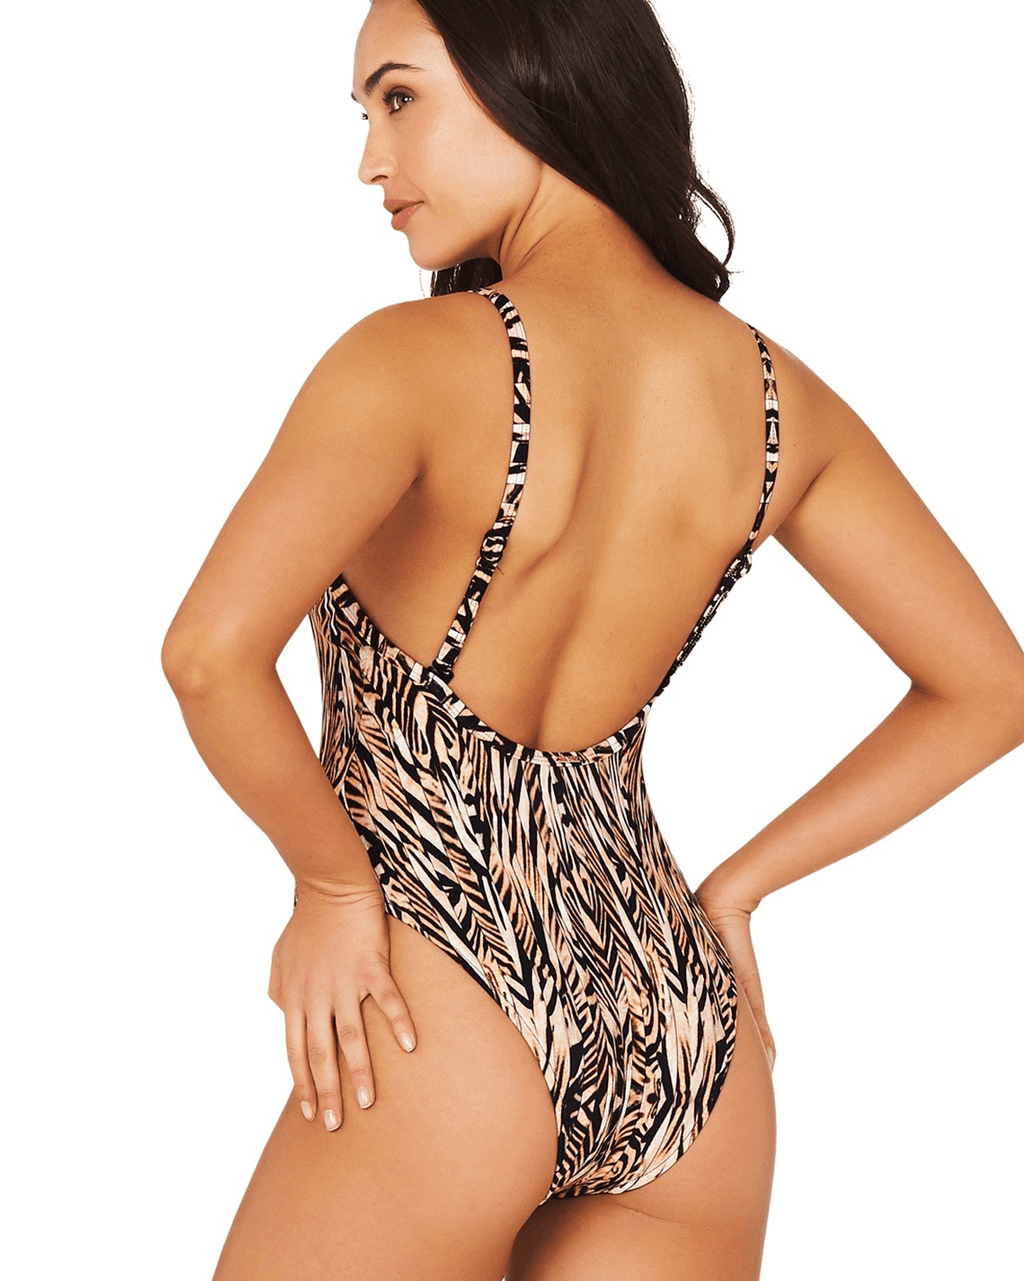 TIGRESS 80s ONE PIECE SWIMSUIT